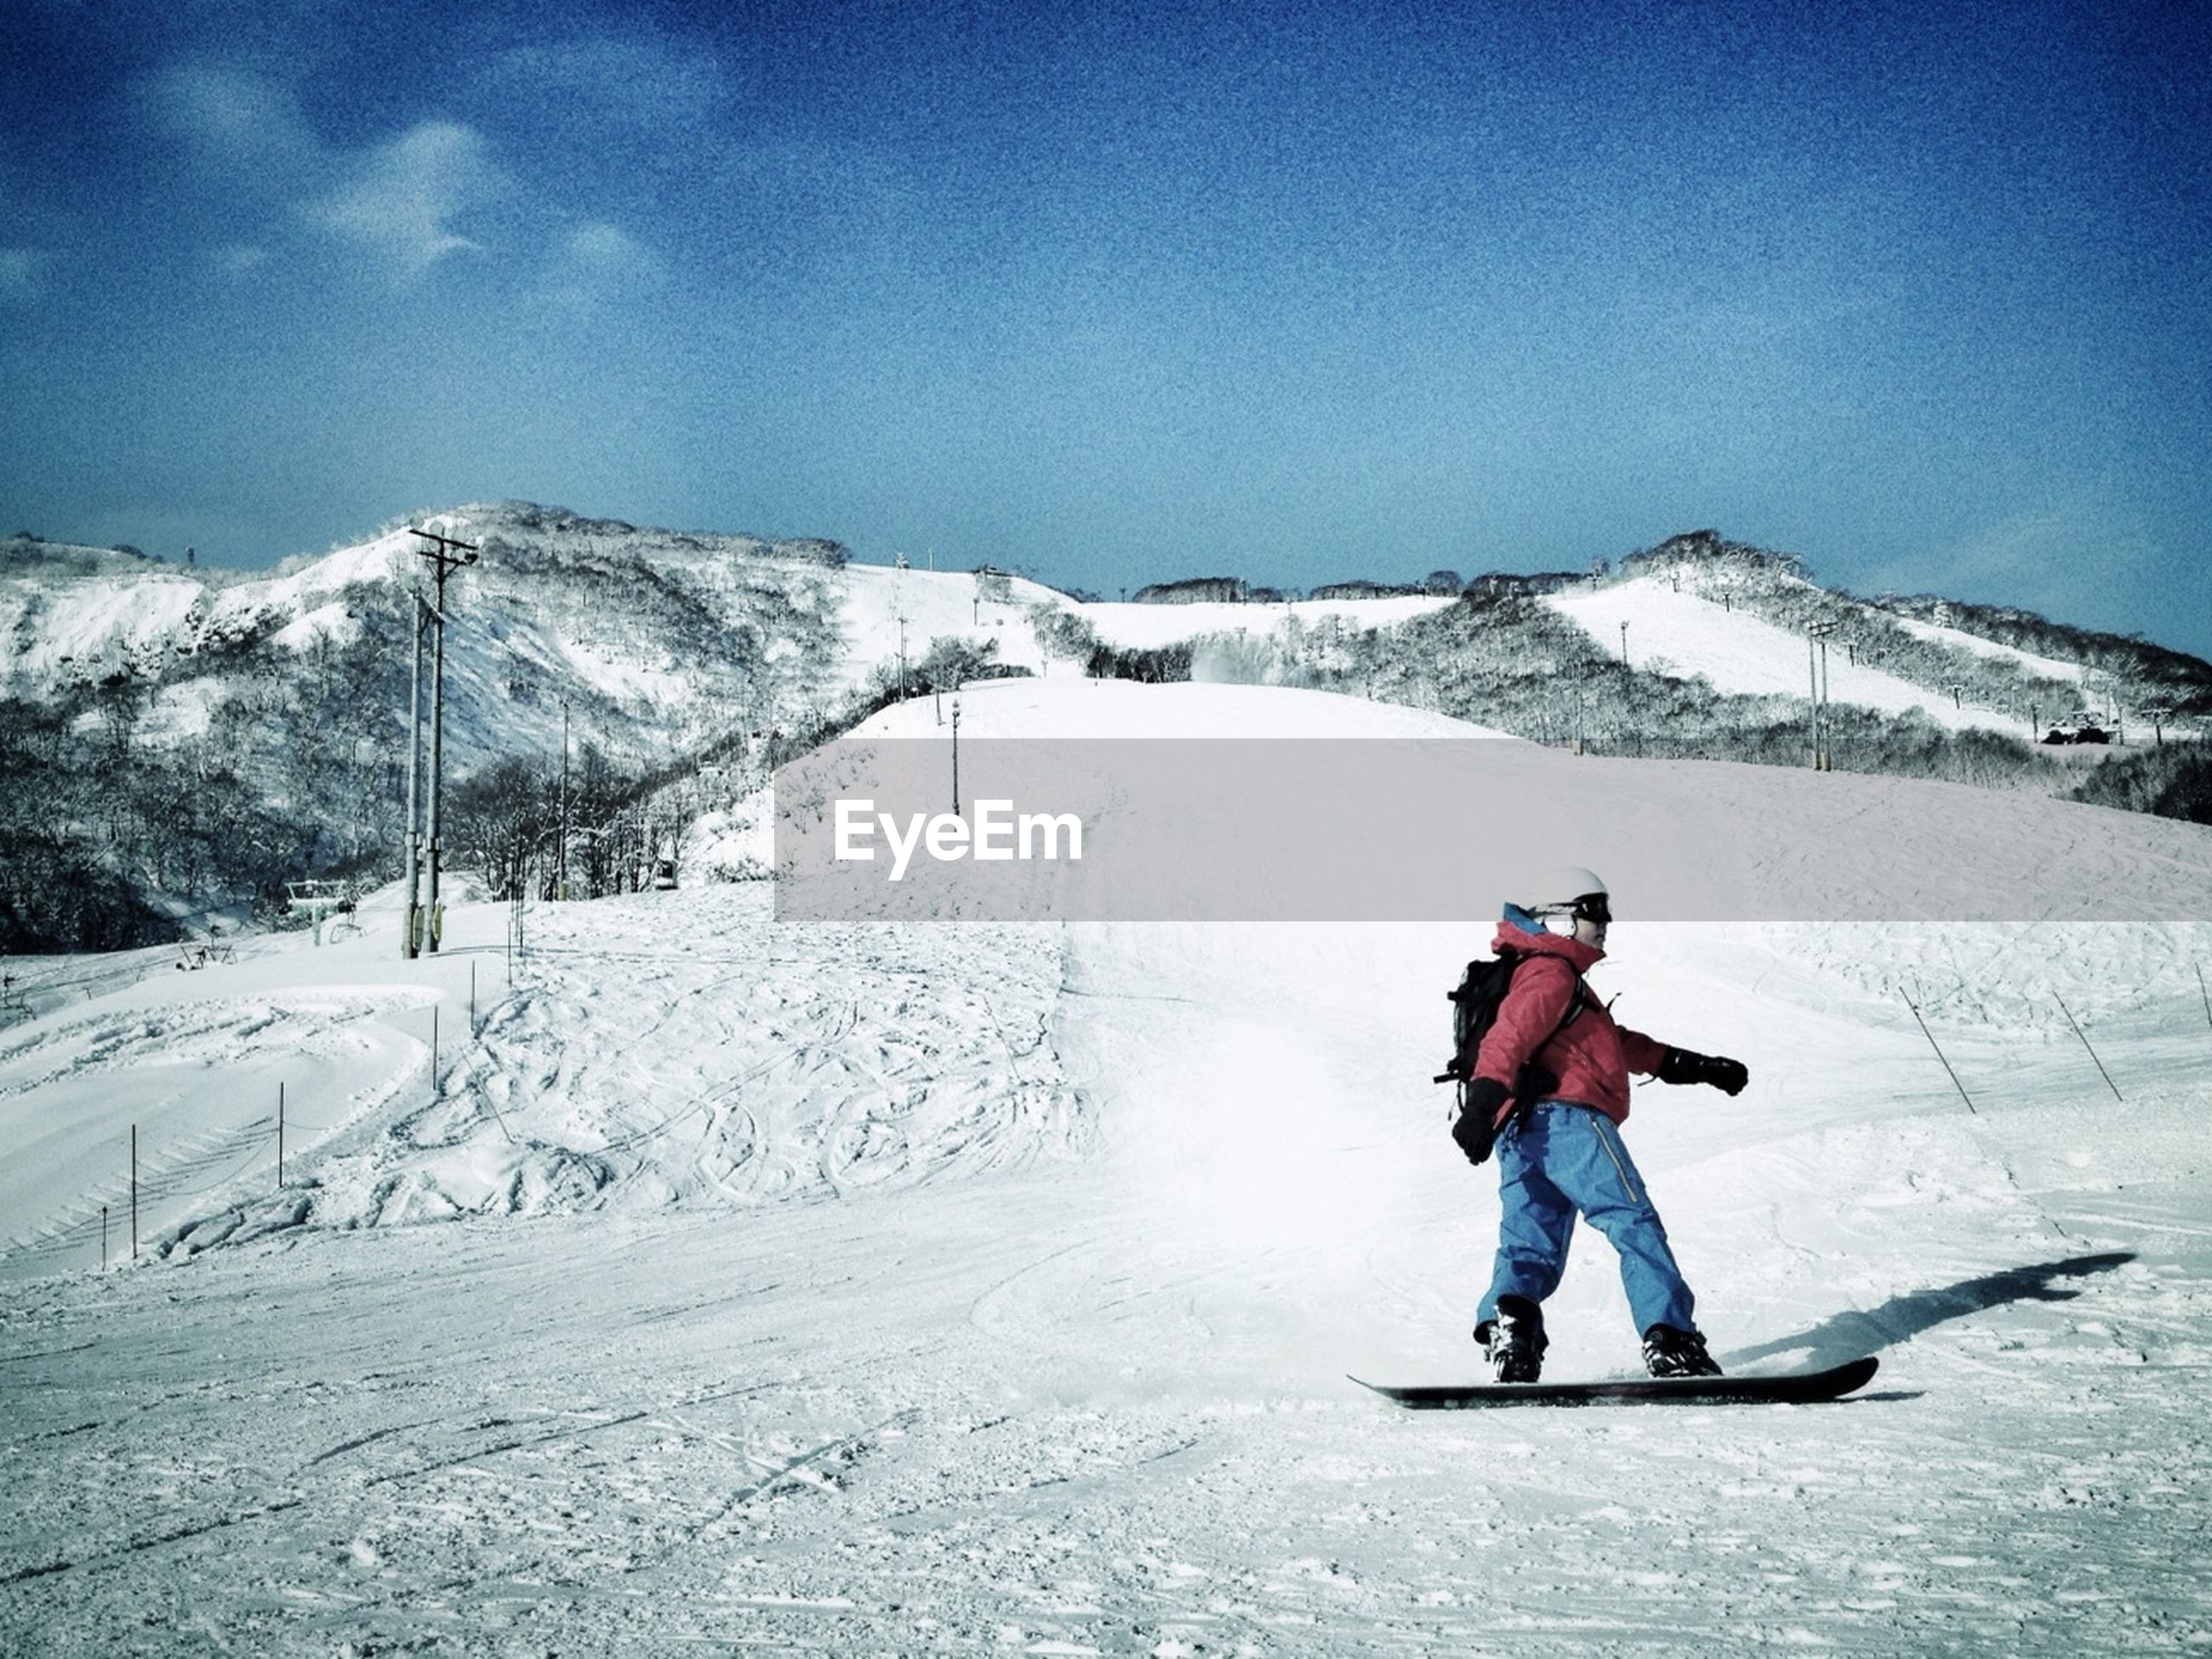 Man snowboarding in mountains